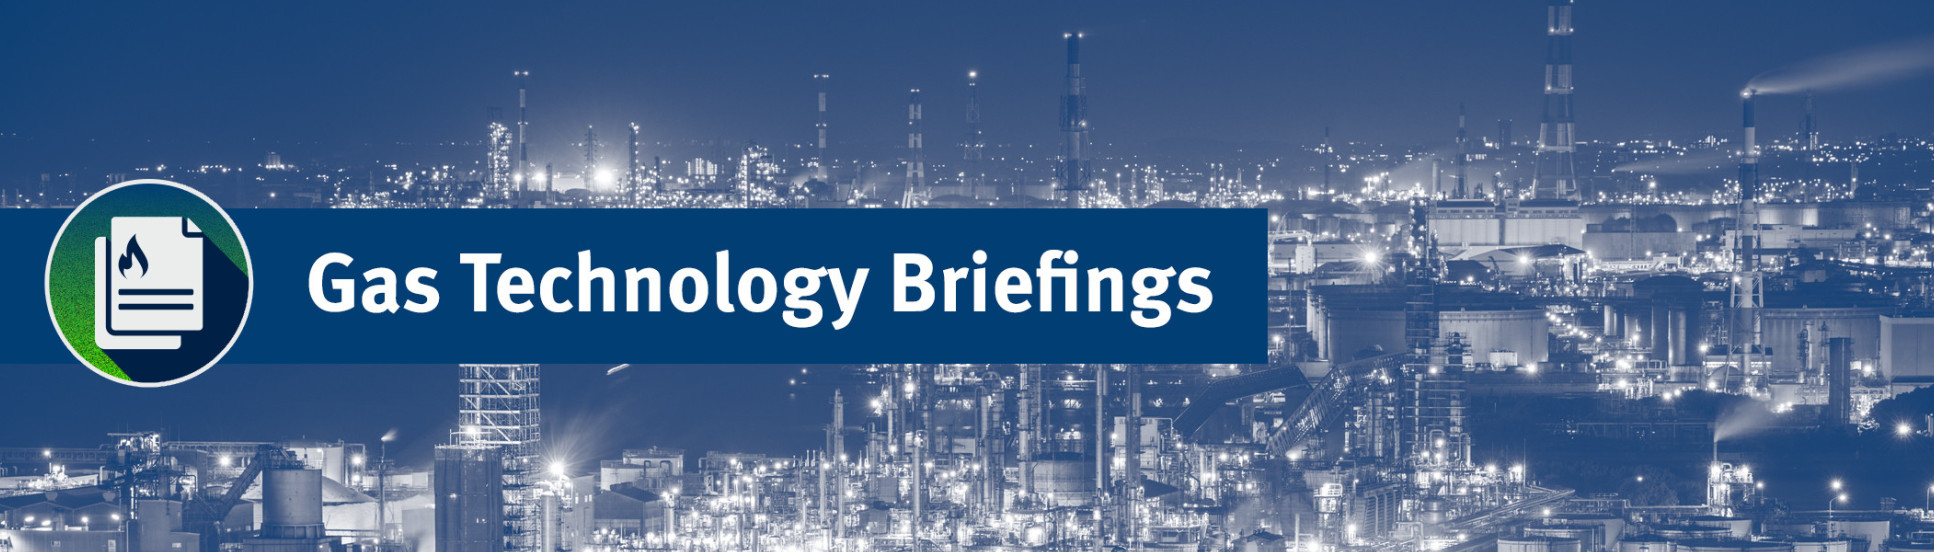 Gas Technology Briefings